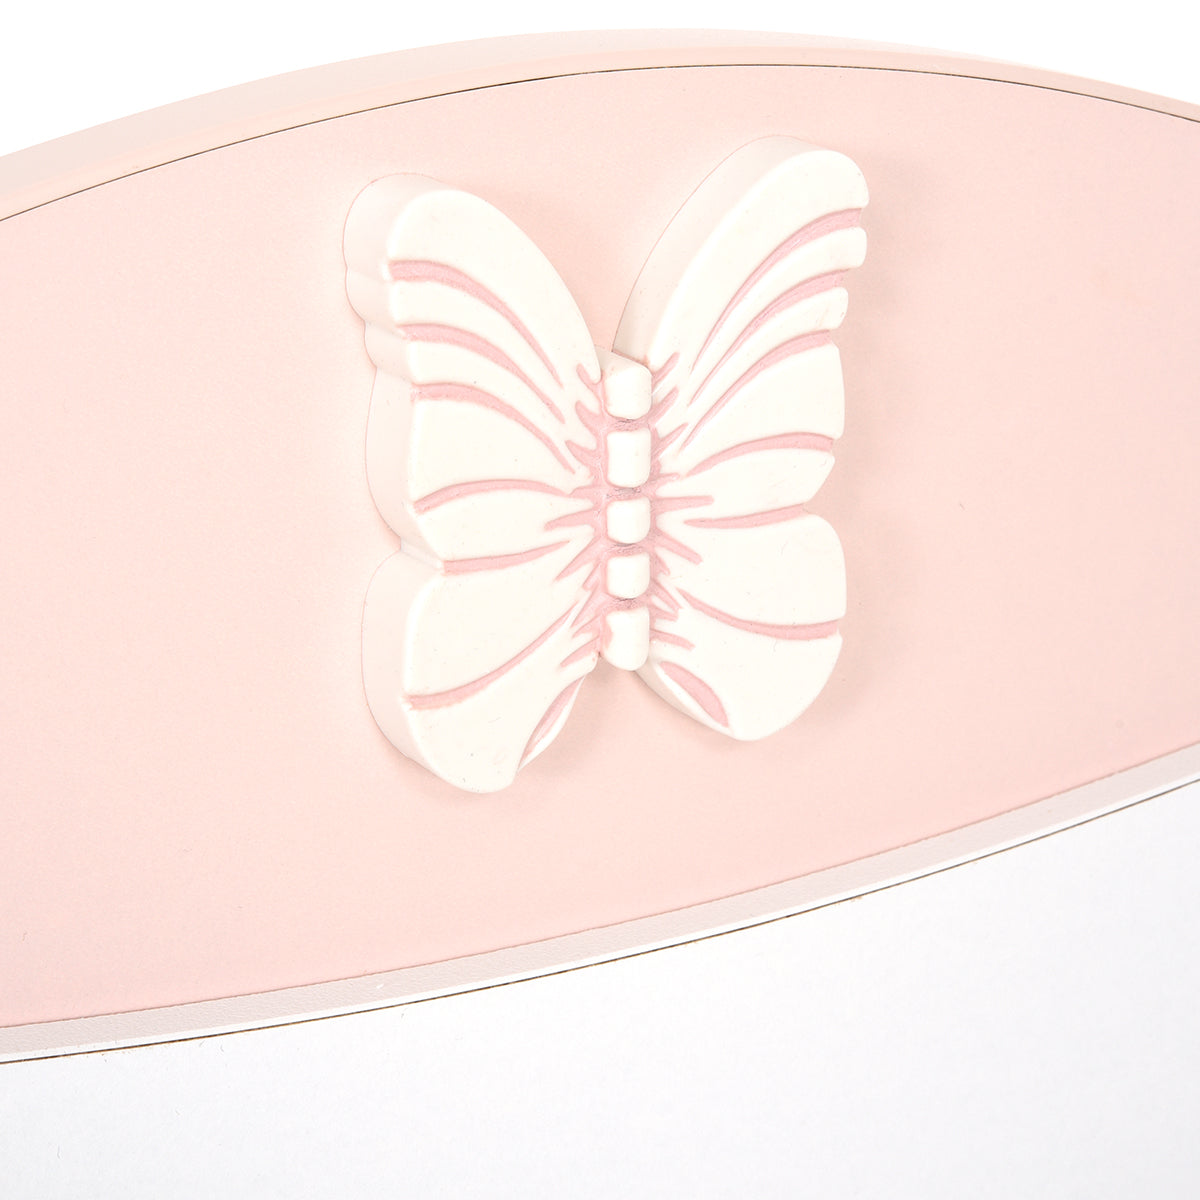 BUTTERFLY Patut bebe 80x180cm, convertibil in Junior, comoda inclusa